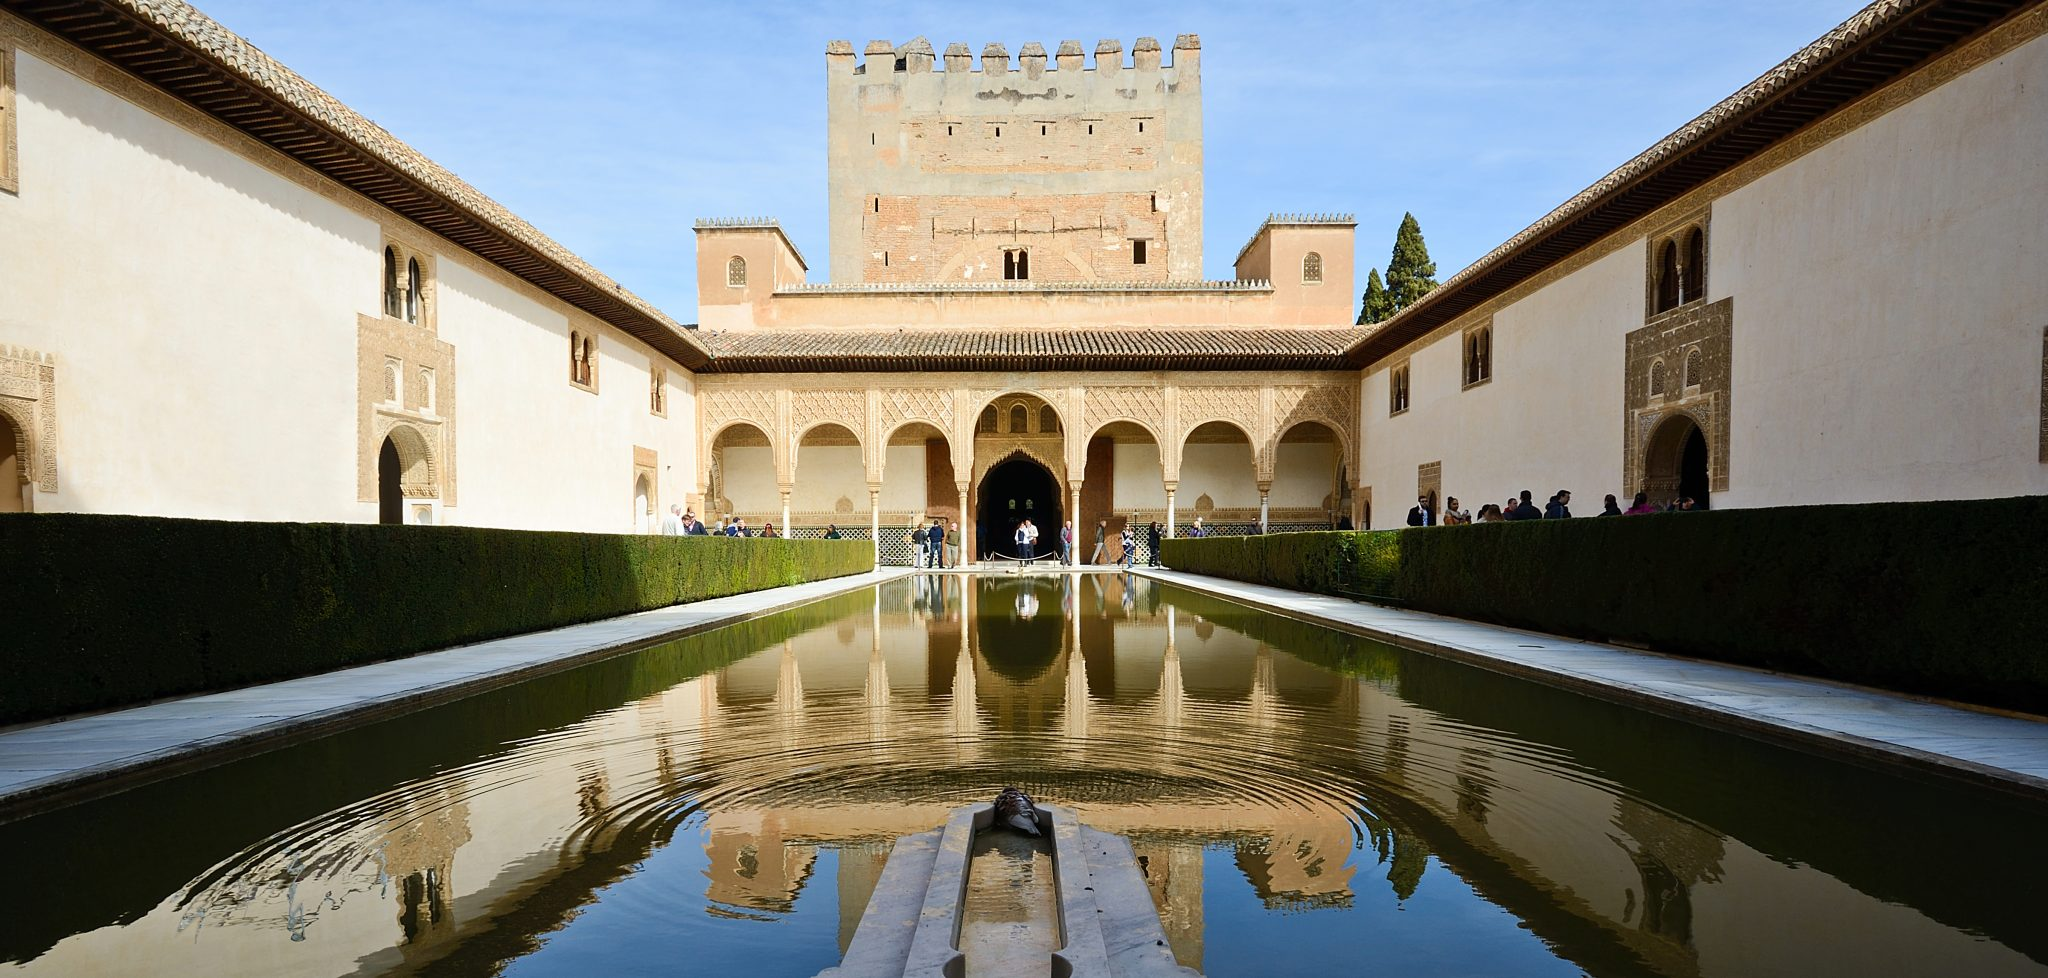 Courtyard of the Myrtles in Alhambra, Granada, Andalusia, Spain